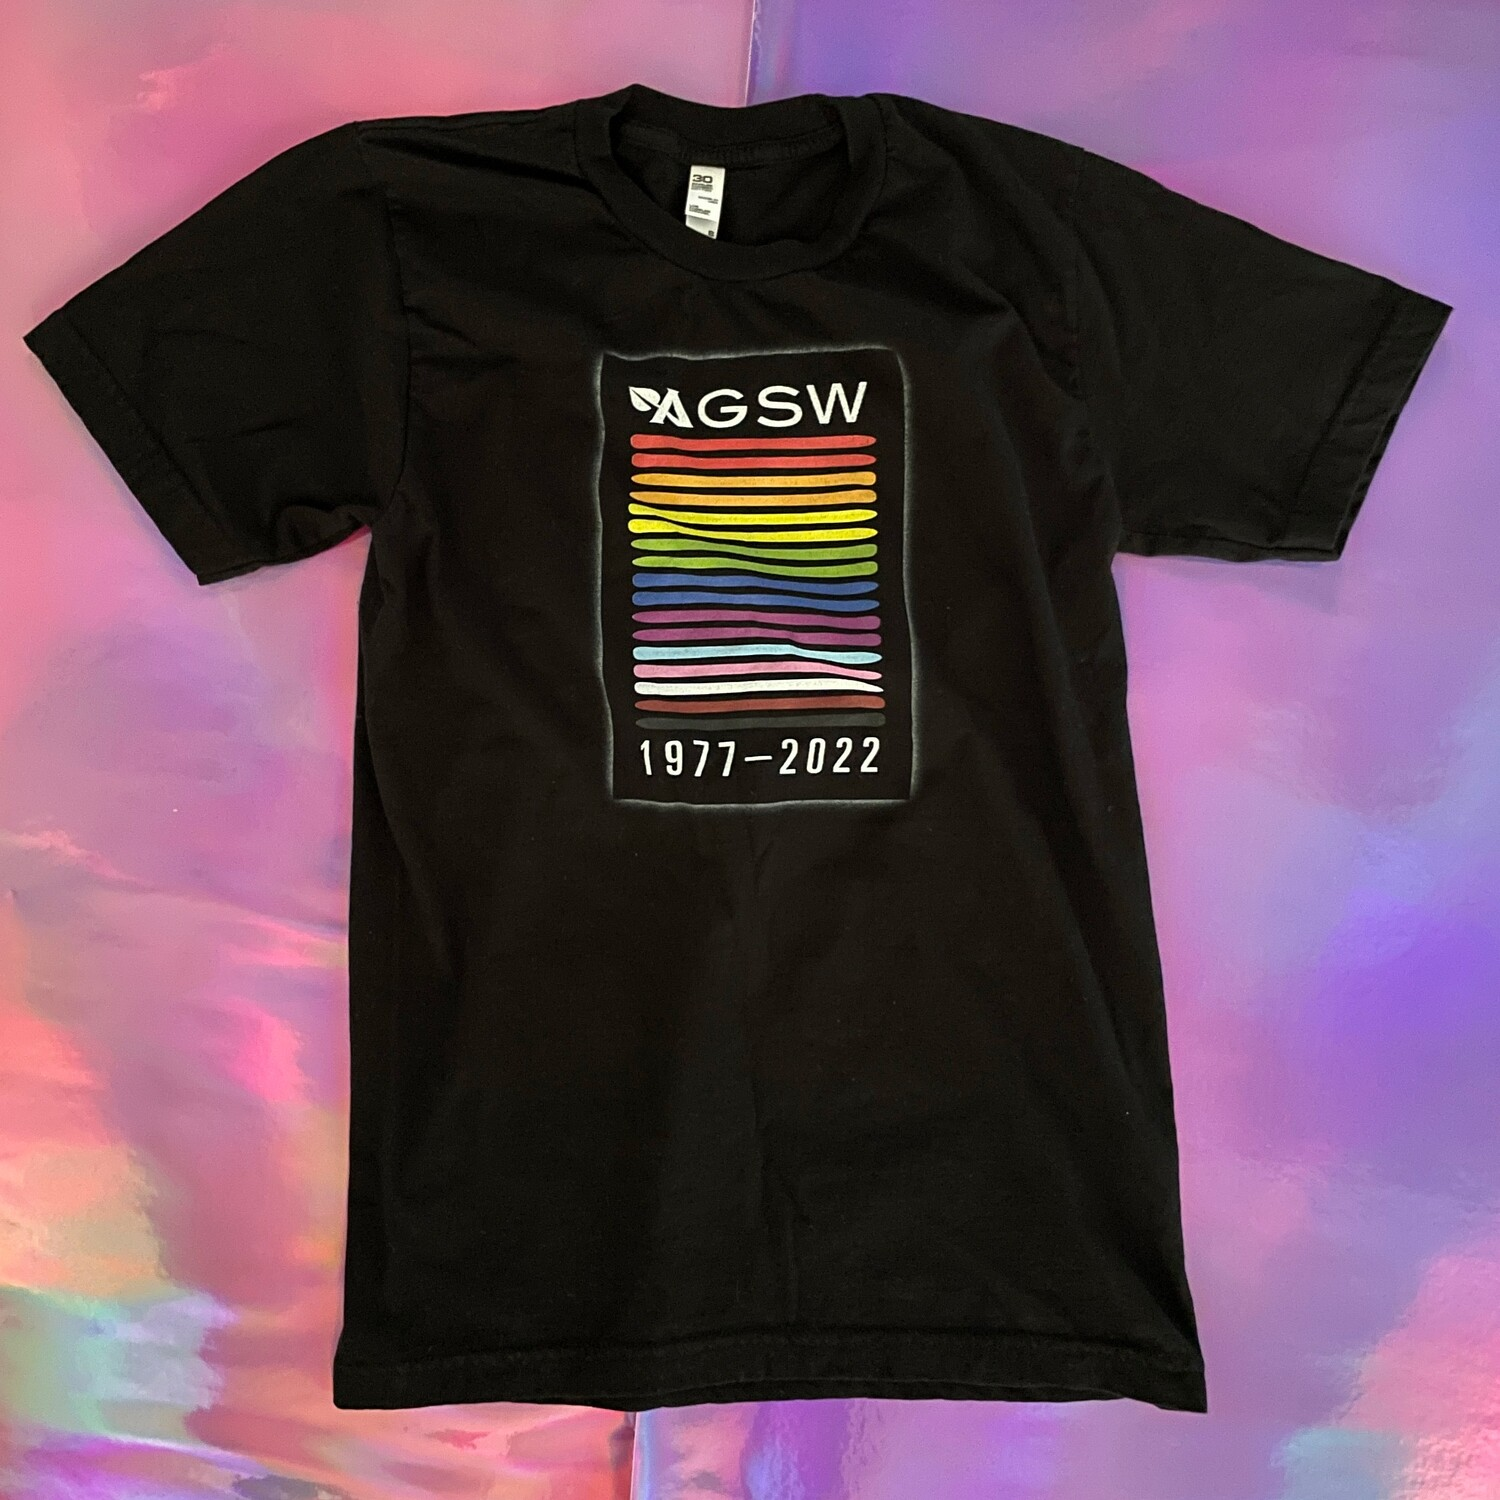 AGSW 2022 Anniversary Shirt - Limited Edition